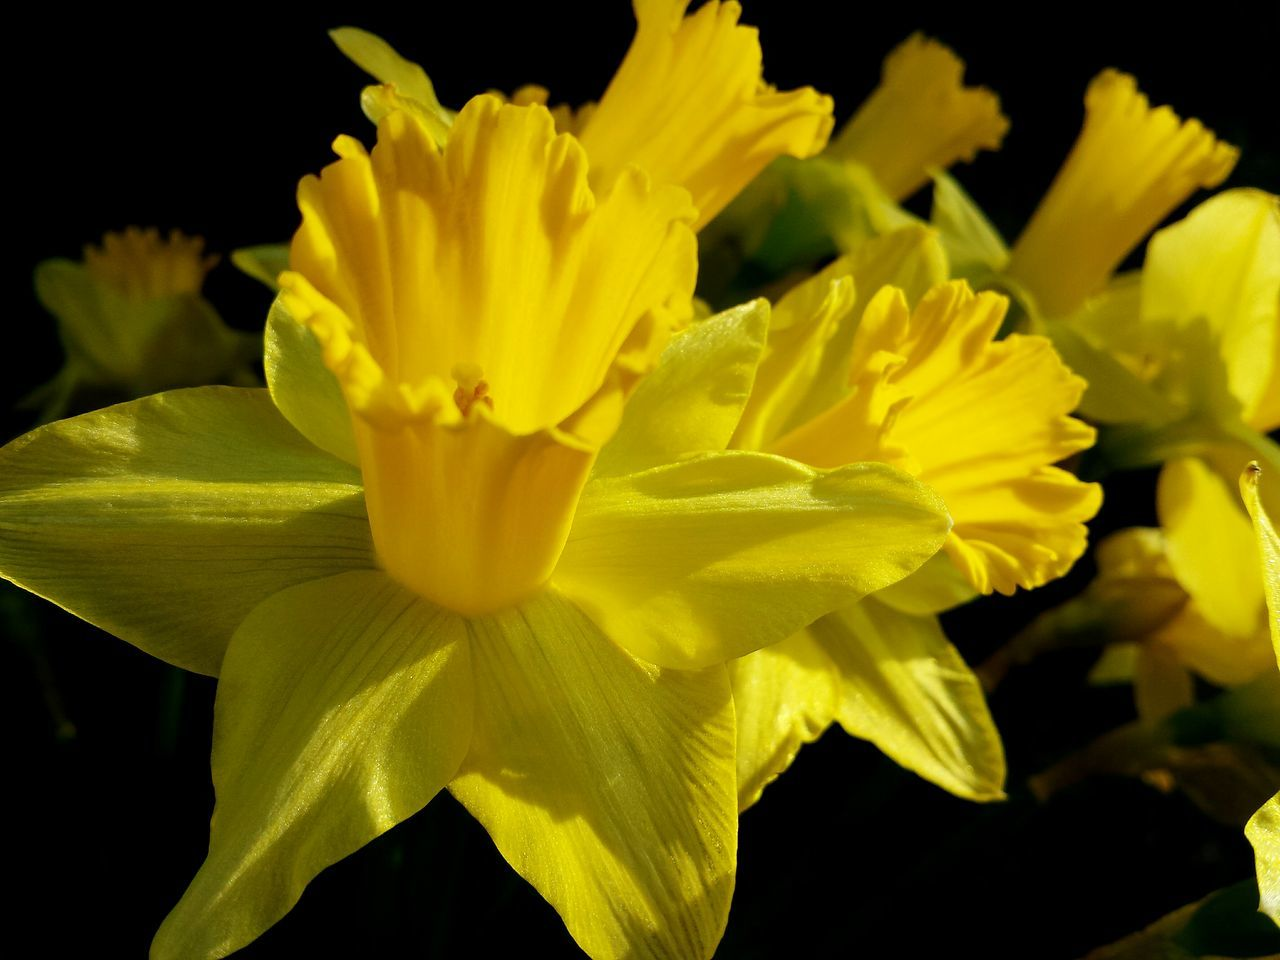 flower, petal, yellow, beauty in nature, flower head, fragility, nature, freshness, growth, no people, plant, close-up, springtime, outdoors, blooming, day, black background